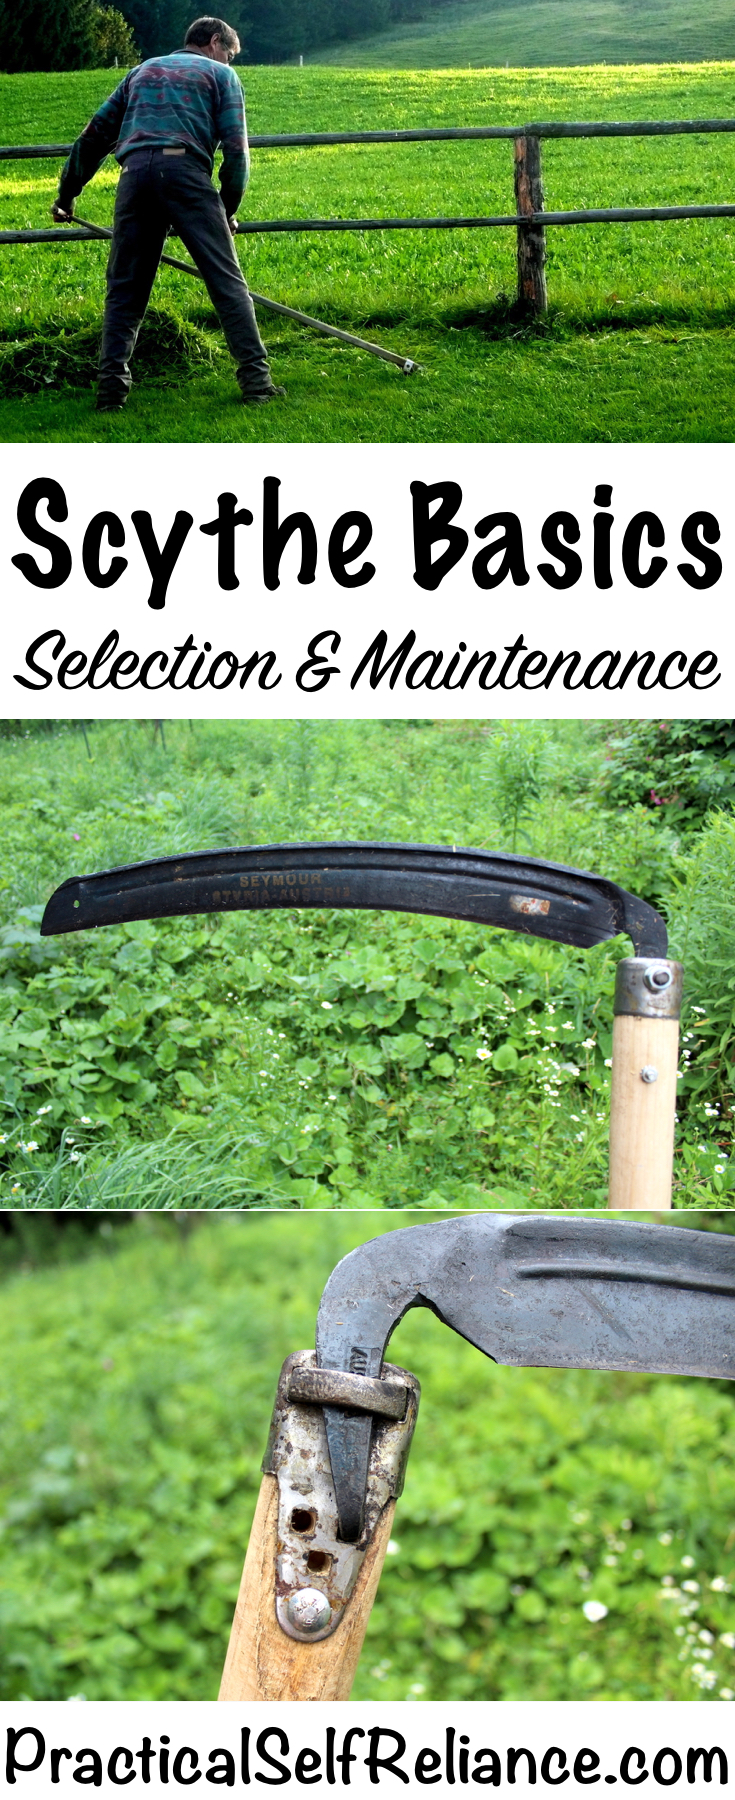 How to Select and Maintain a Scythe